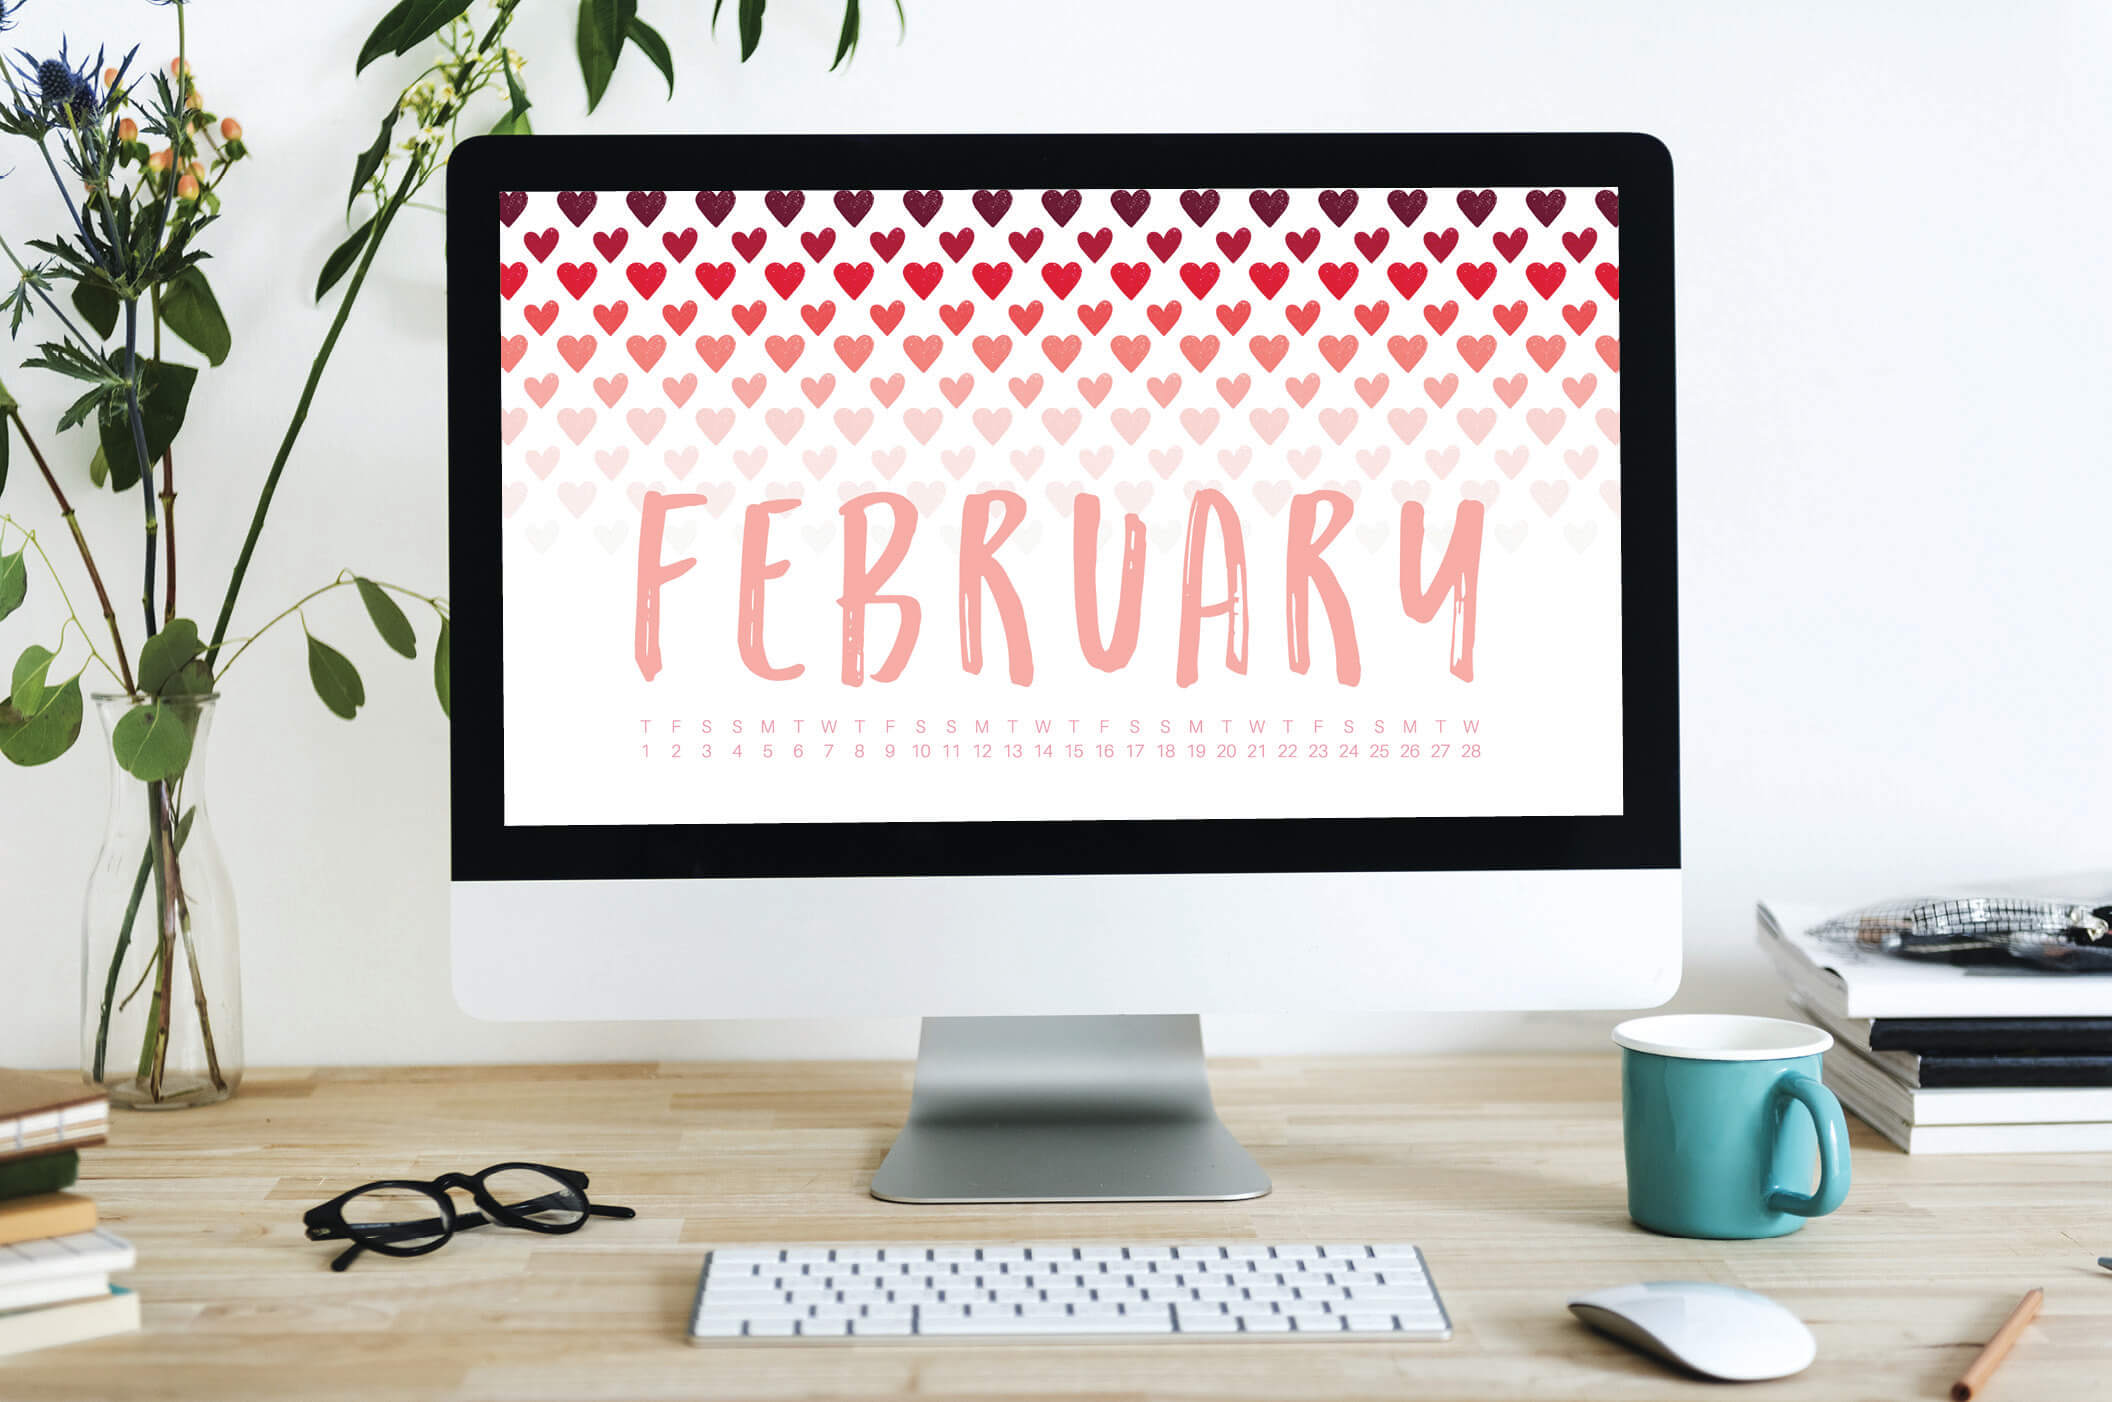 Uppercase Designs February 2018 Desktop Calendar Wallpaper